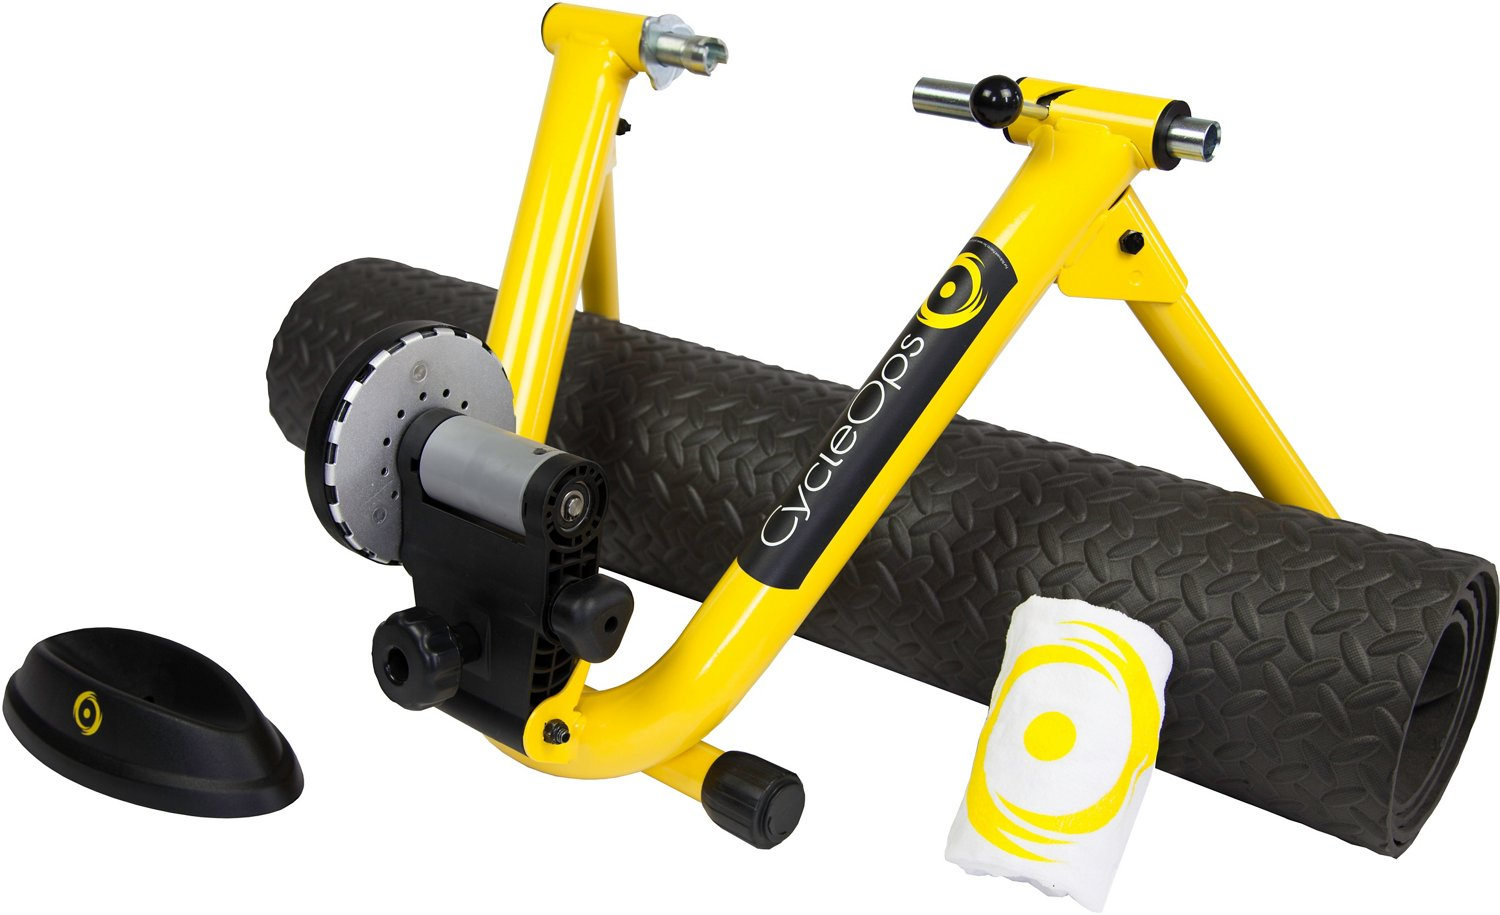 CycleOps Mag Trainer Kit